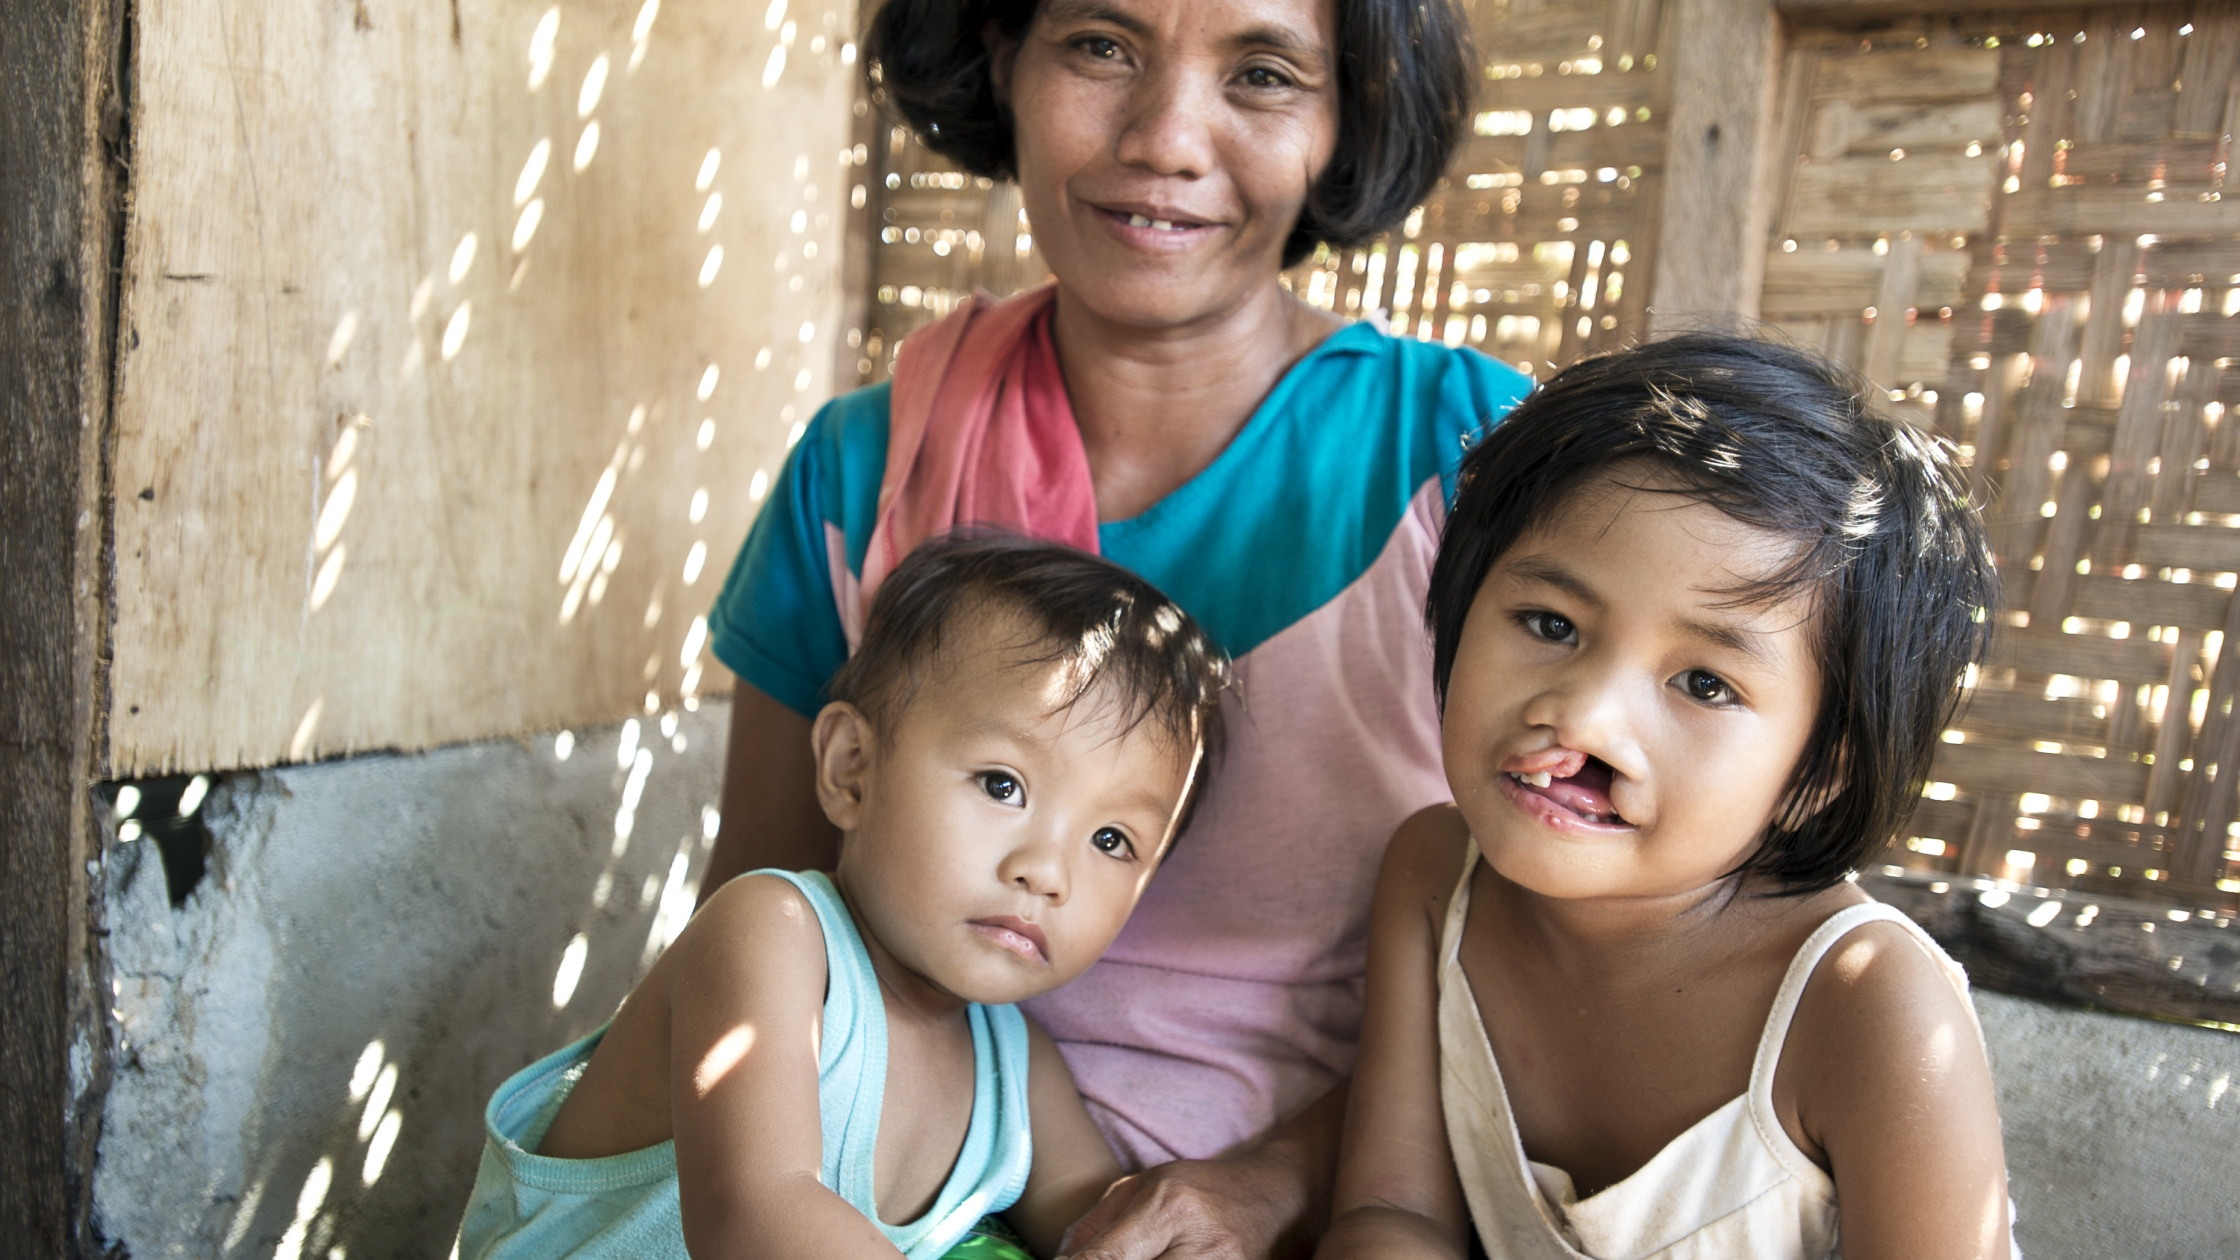 Five-year-old Loraine before receiving her cleft lip surgery from Operation Smile Philippines. Photo: Jessica Brandi Lifland.